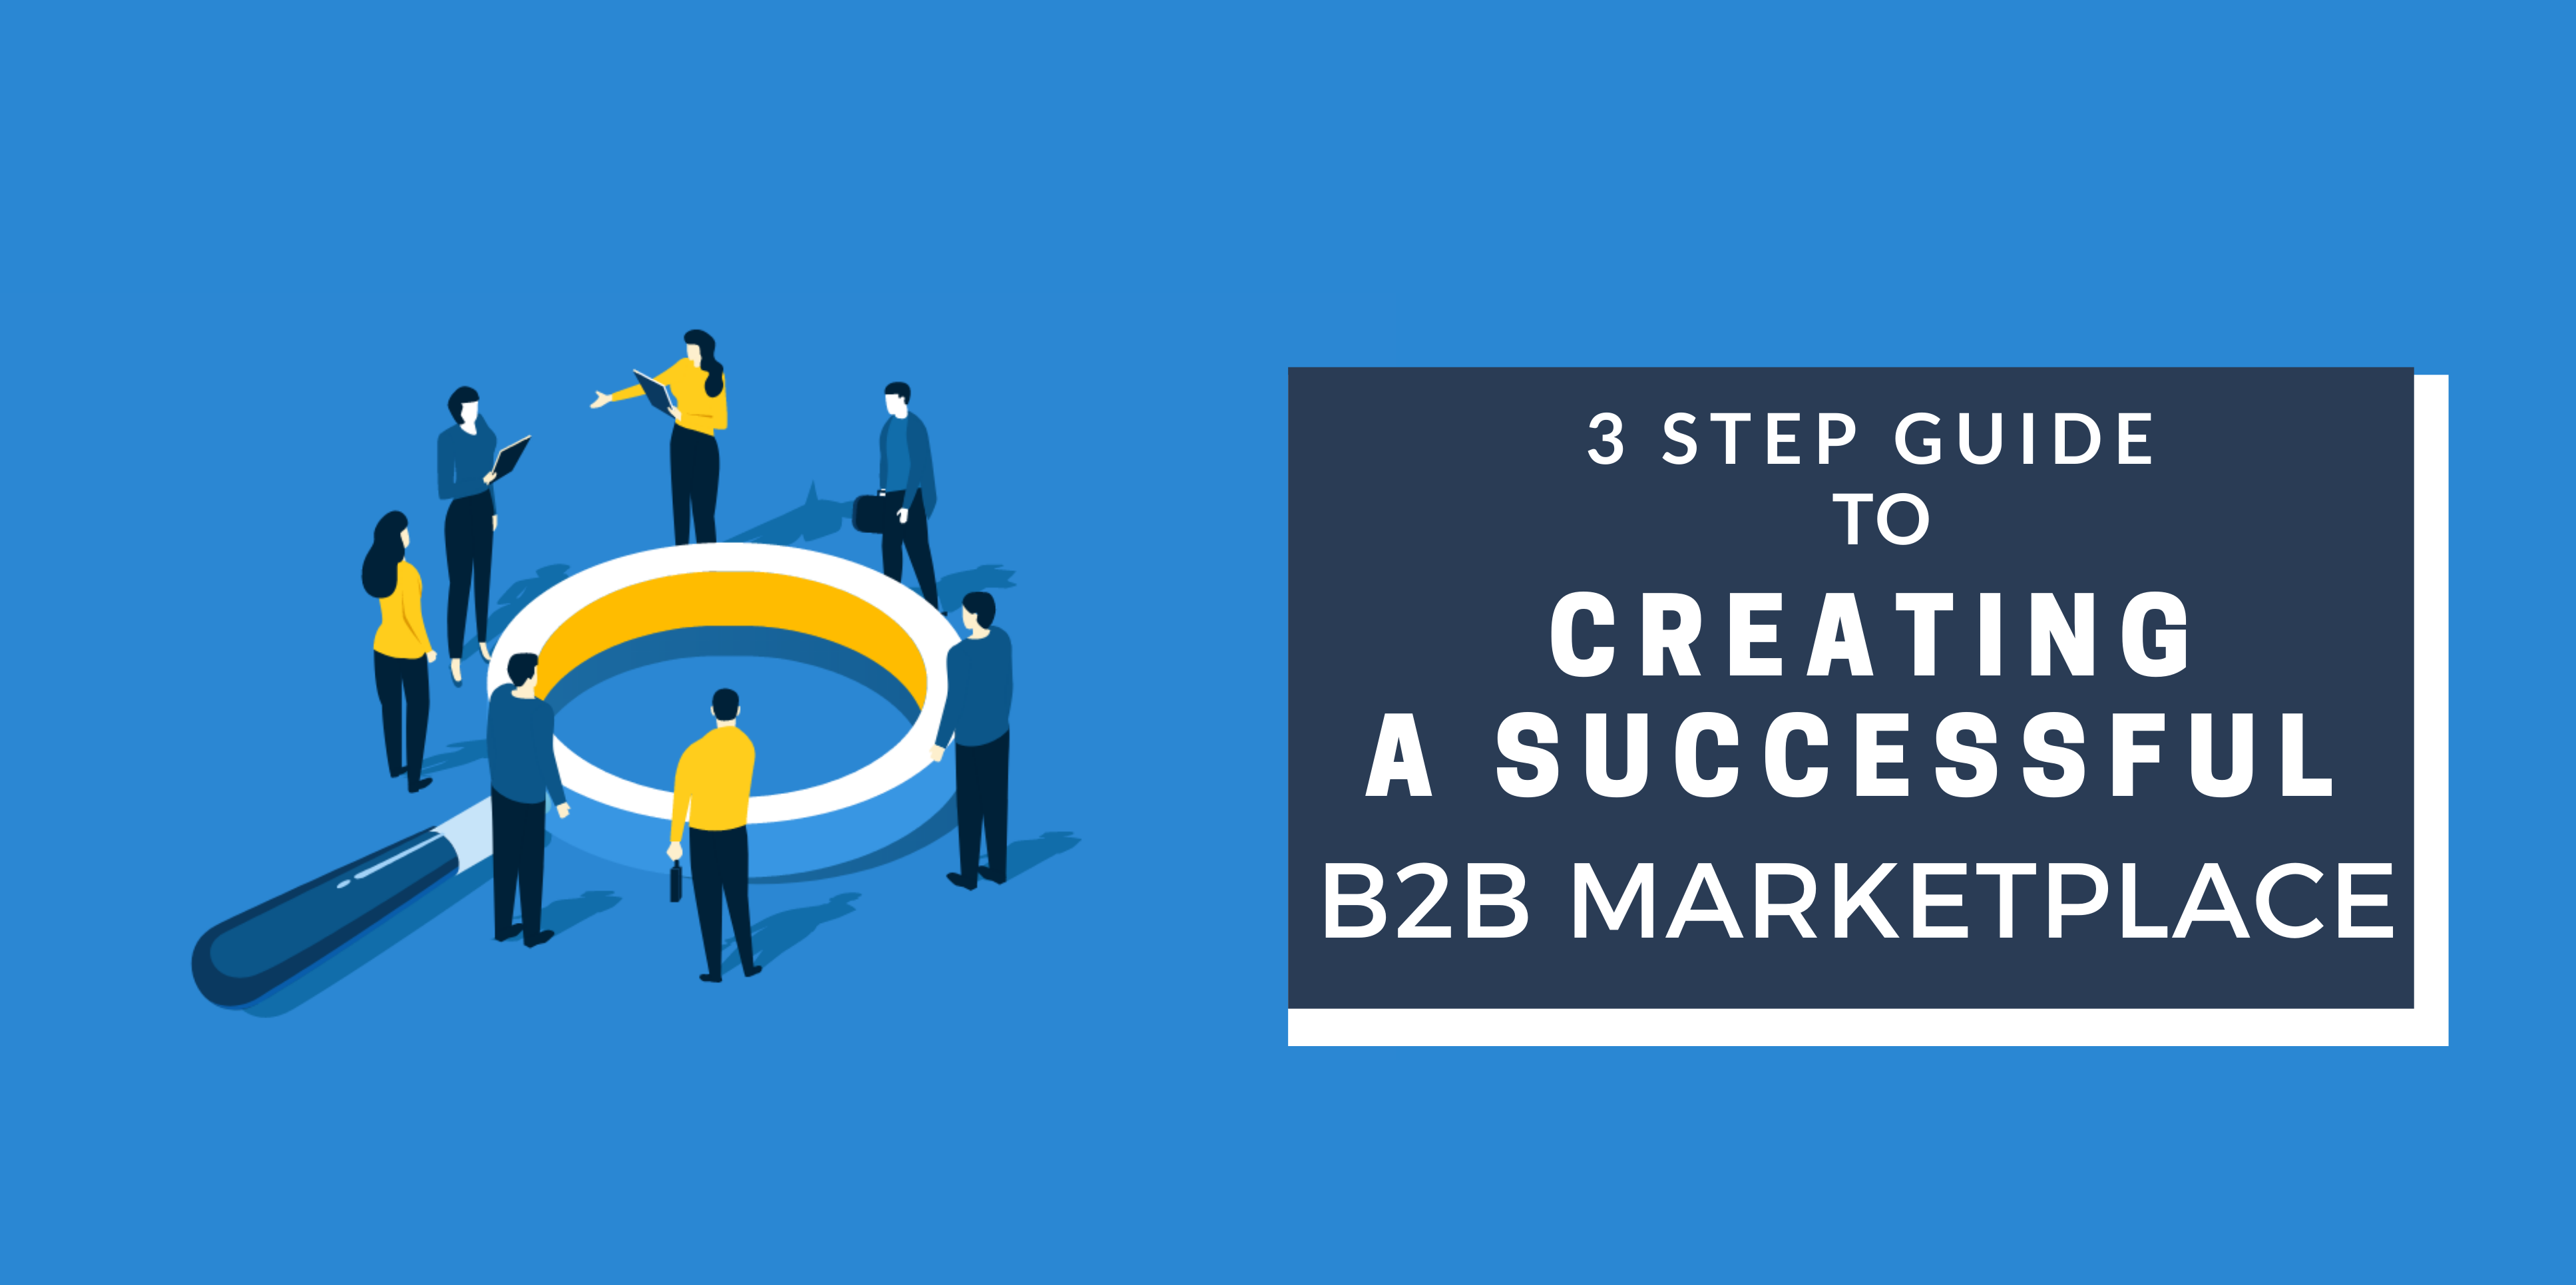 3 Step Guide to Creating A Successful B2B Marketplace